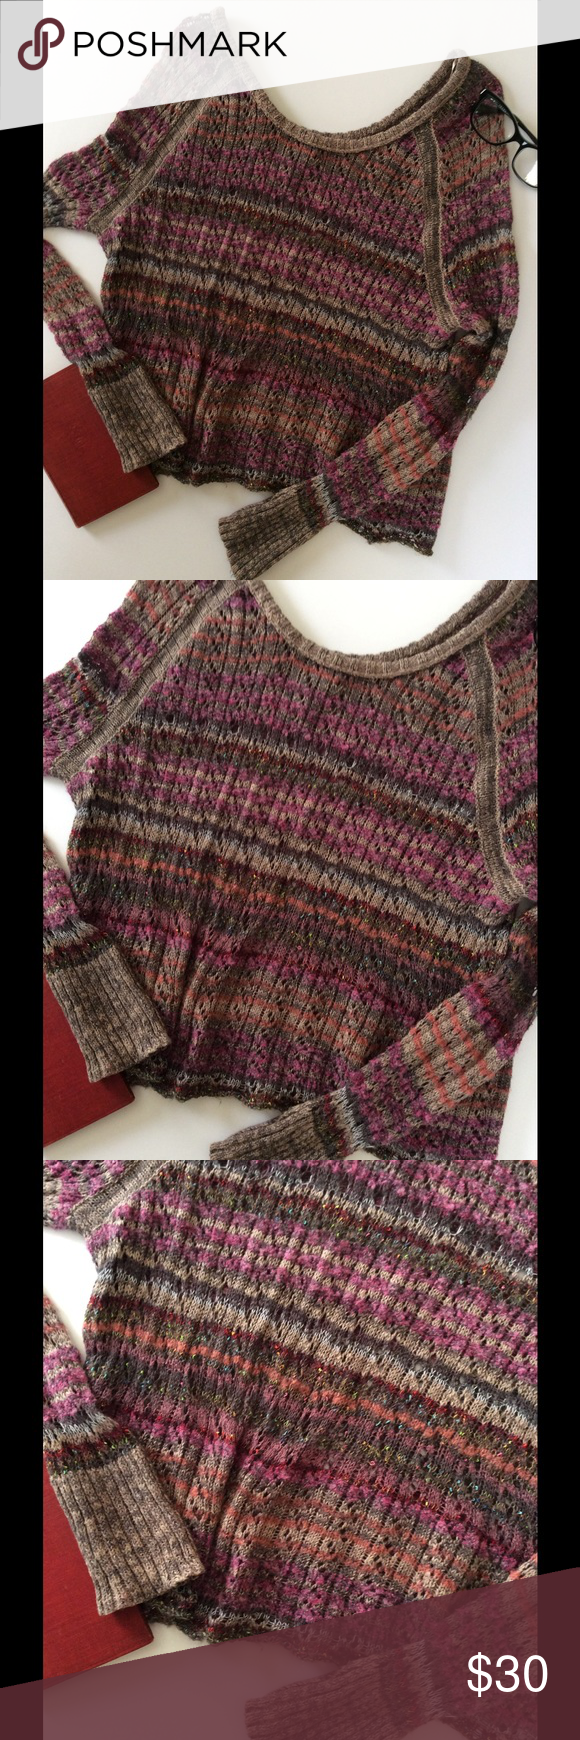 🎉 Free People Sweater Top Free People sweater.  Stunning sweater in multi-colors(browns/pinks/oranges), crochet fabric, wide neckline, long sleeves, fitted.  Runs small. Size extra small.  Preowned. Free People Sweaters Crew & Scoop Necks